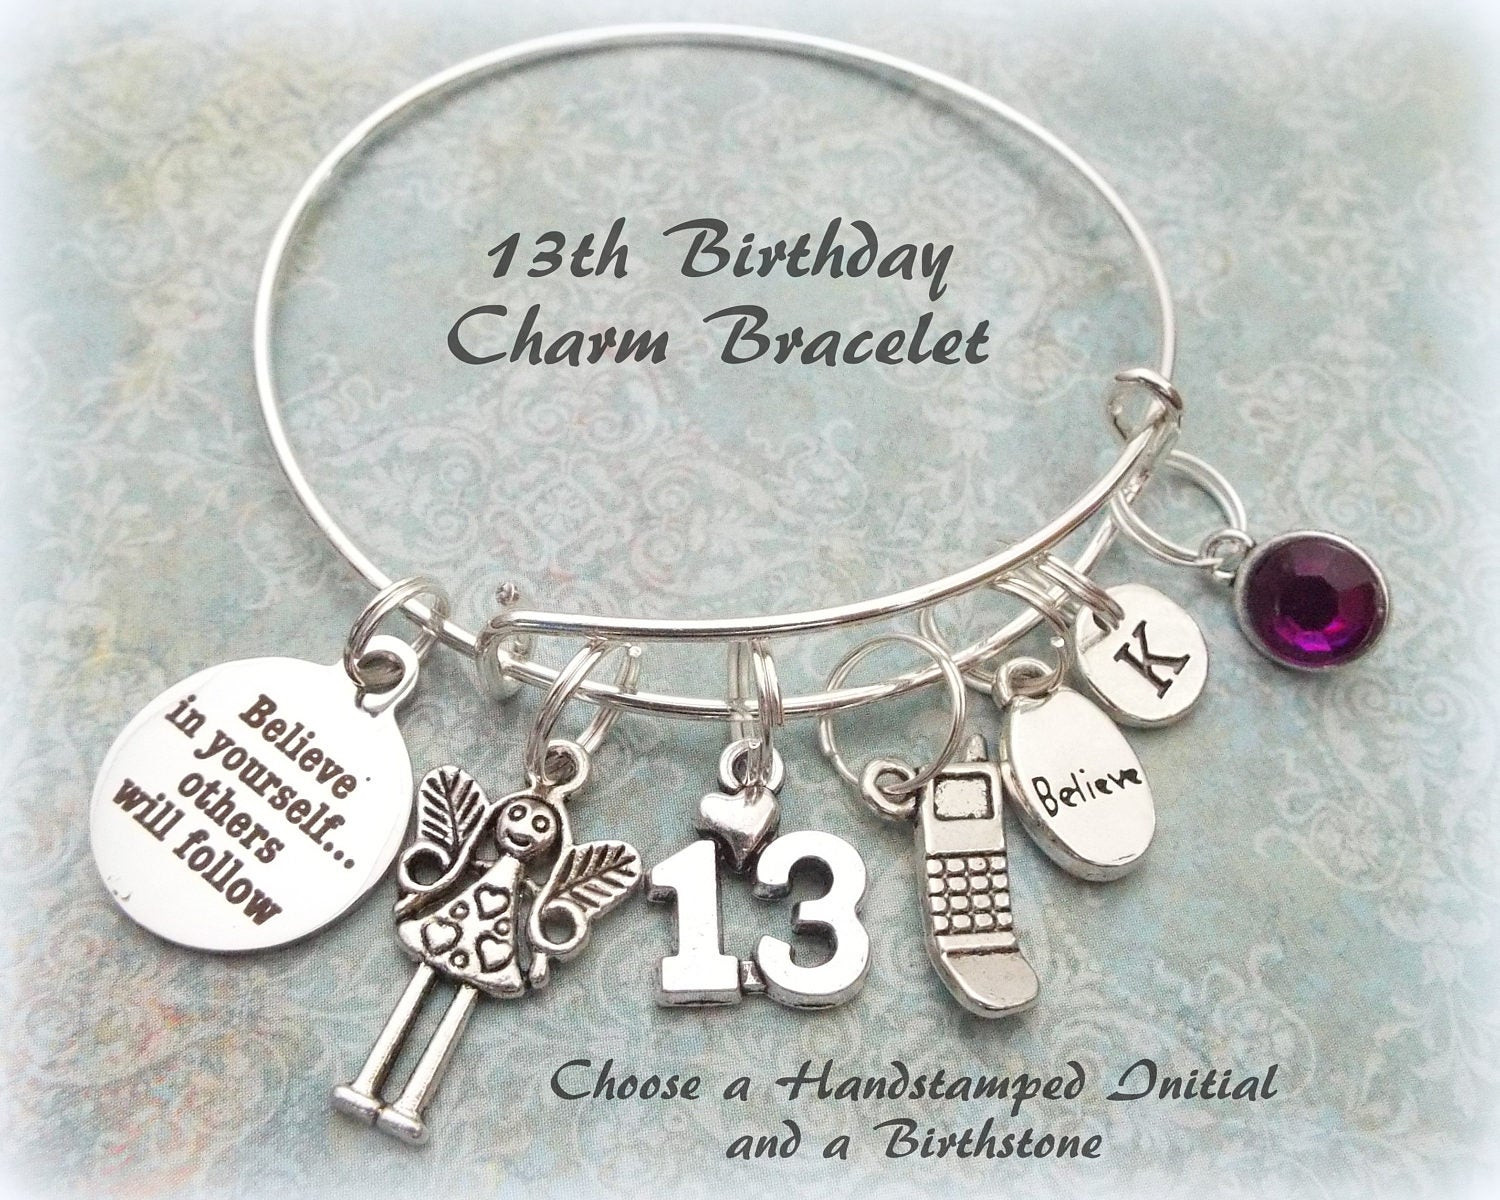 Best ideas about 13th Birthday Gifts . Save or Pin 13th Birthday Gift for Girl Gift for 13 Year Old Girl Gift Now.